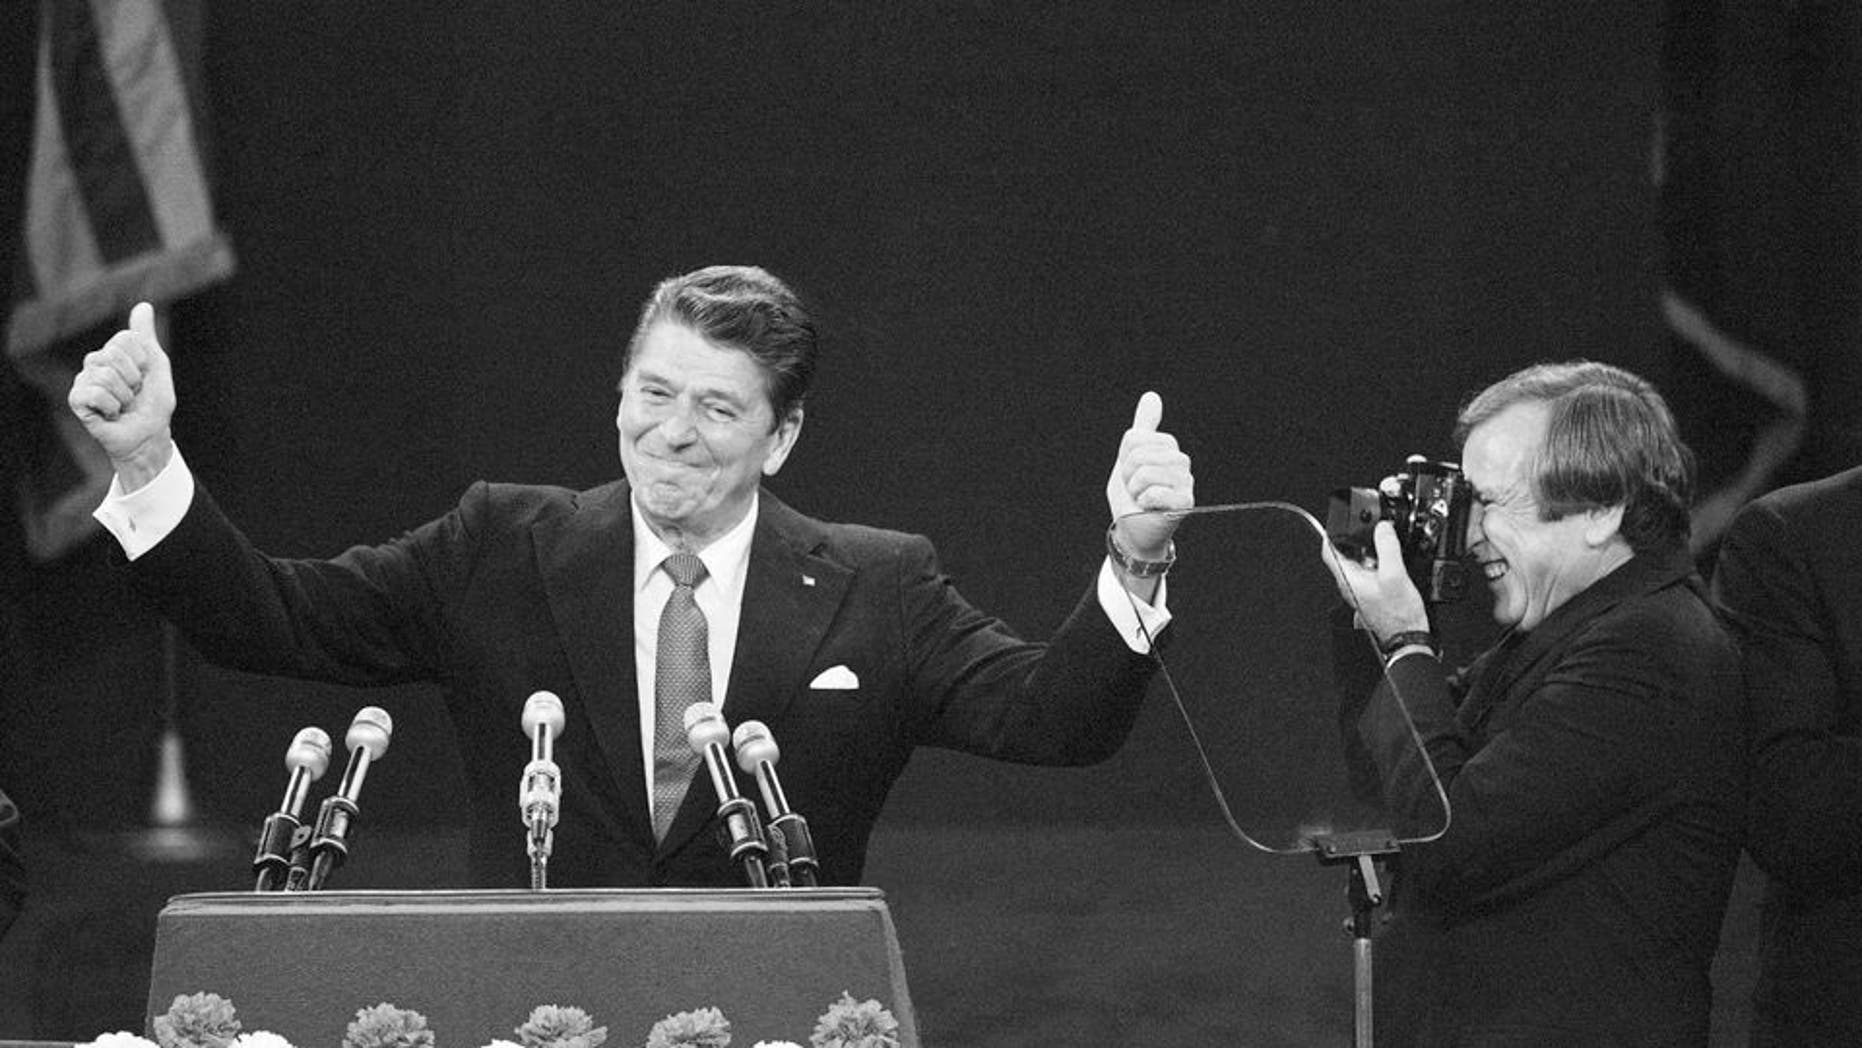 Westlake Legal Group Reagan1980AP This Day in History: July 14 fox-news/us/this-day-in-history fox news fnc/us fnc article 0f3adb25-5e5f-55e8-986f-22ba960bf895